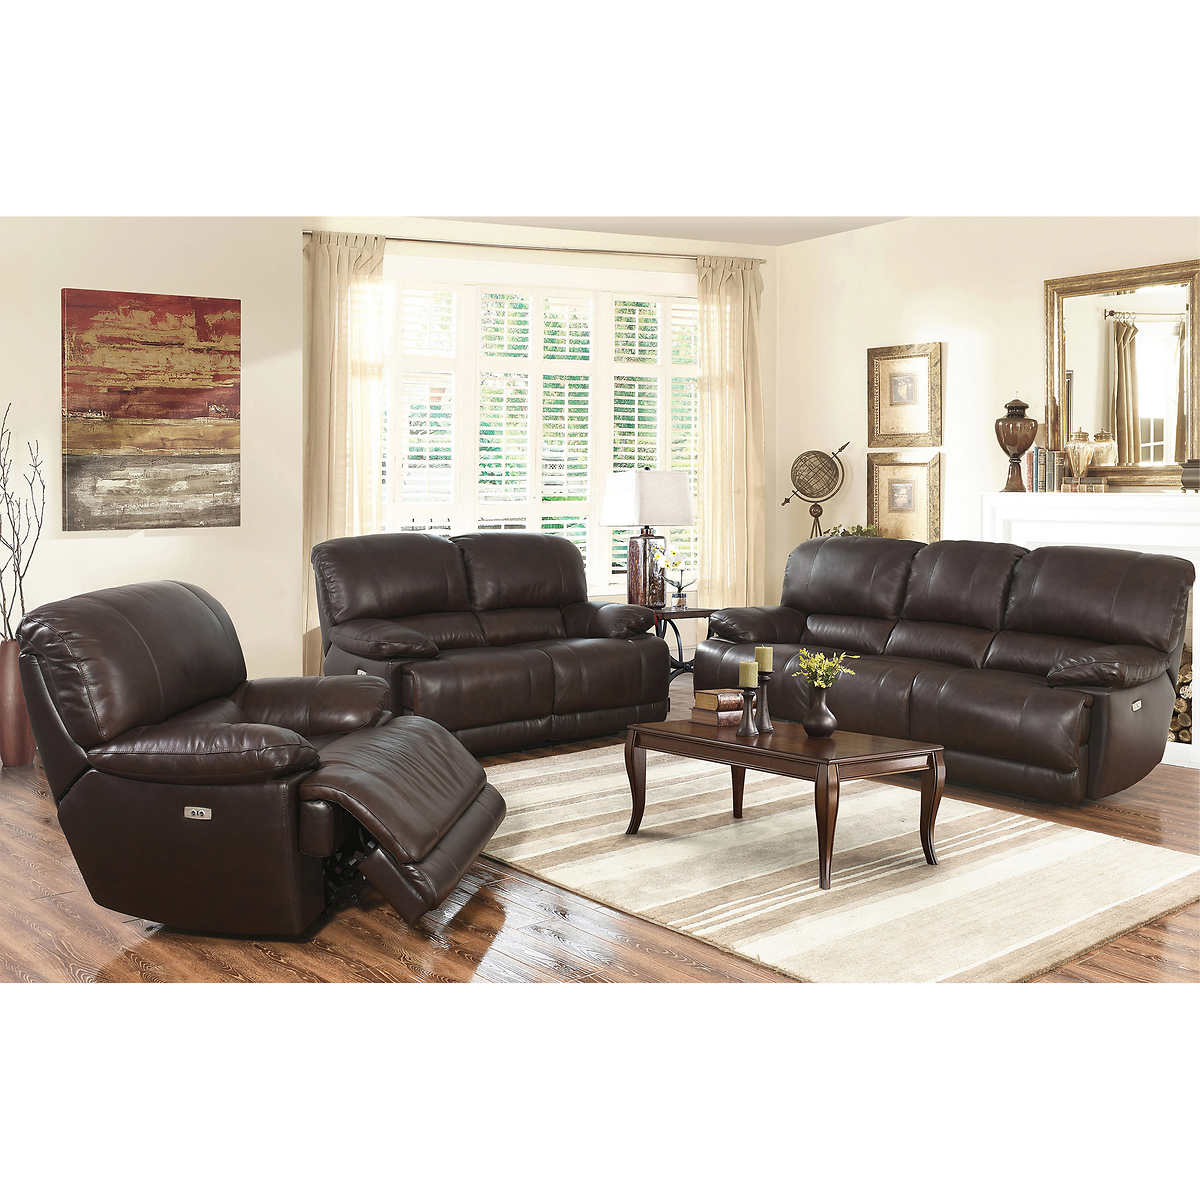 Arleta 3 piece top grain leather power reclining living for 3 piece living room set